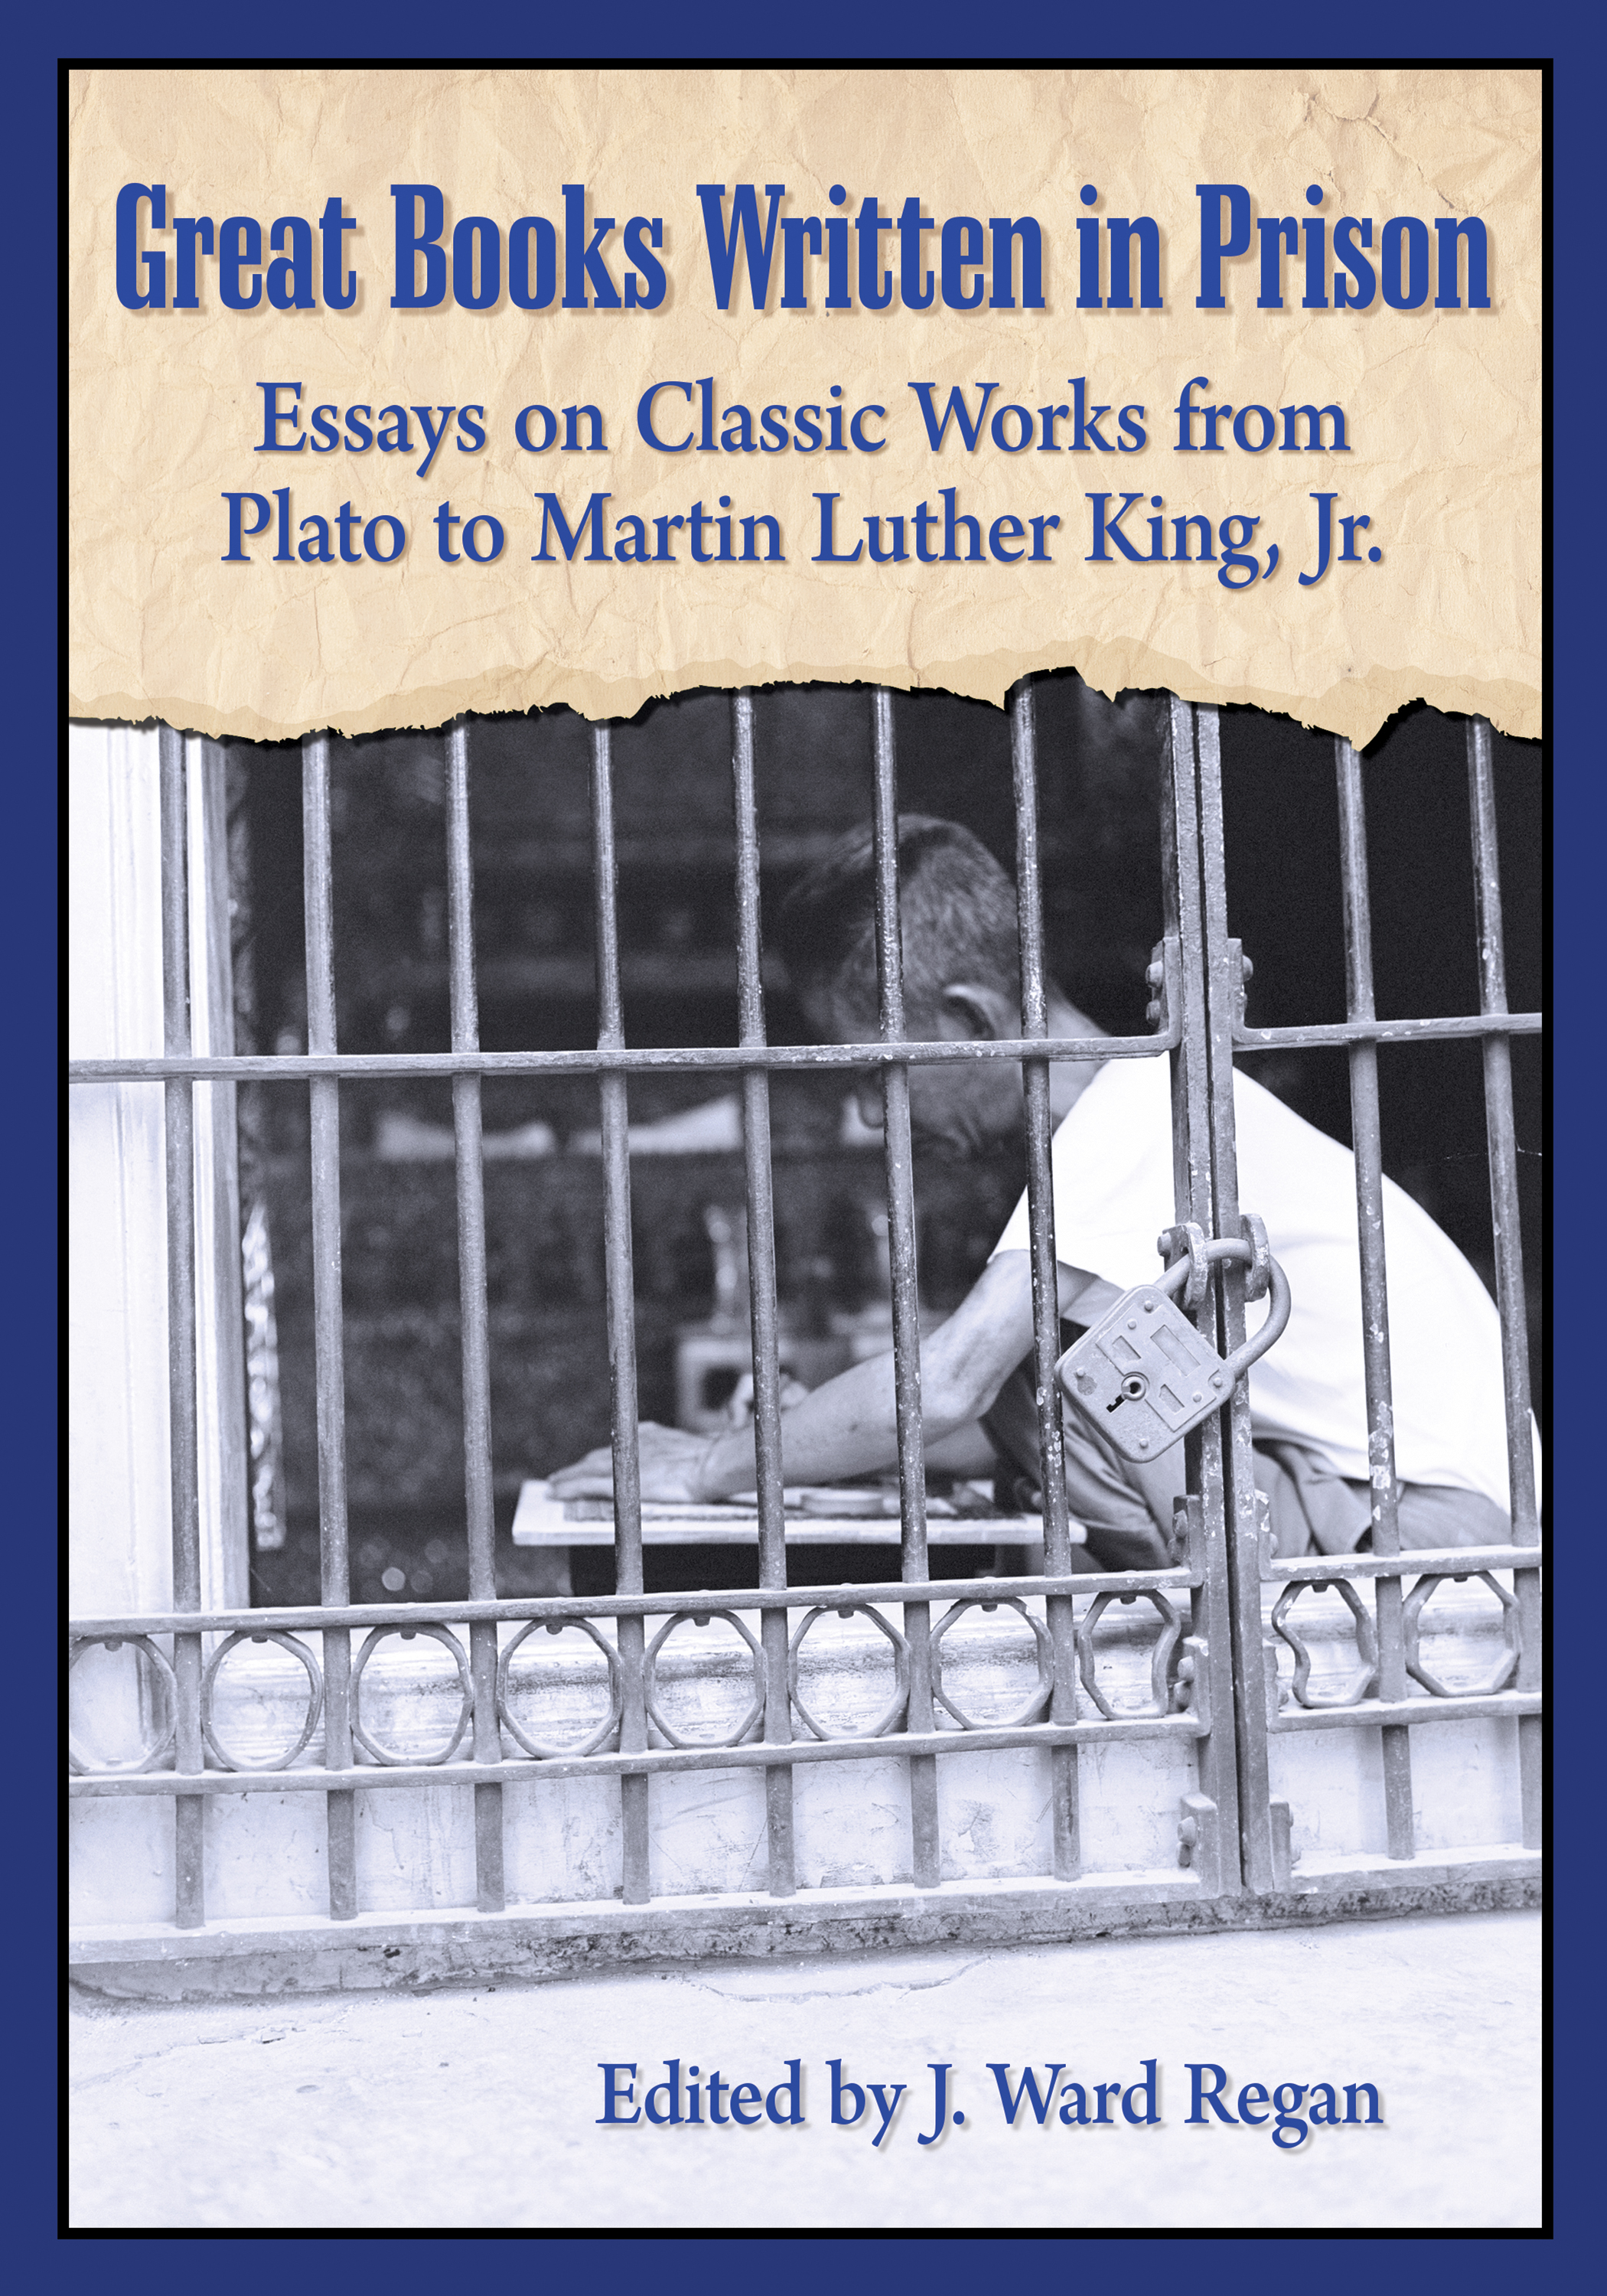 mlk essays essay essay on martin luther king jr essays by martin  great books written in prison edited by j ward regan diversity news martin luther king jr holiday